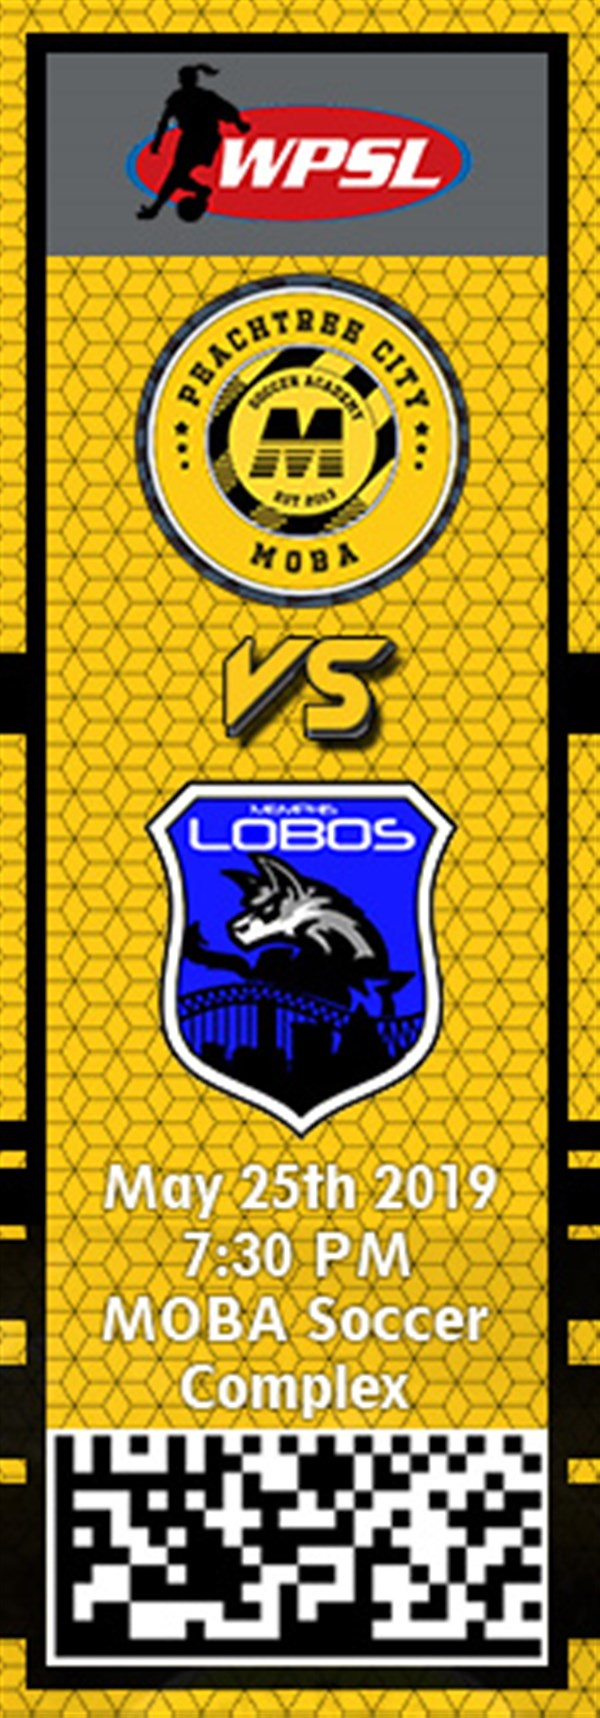 Get Information and buy tickets to PTC MOBA vs. Memphis Lobos WPSL on MOBA Soccer Academy